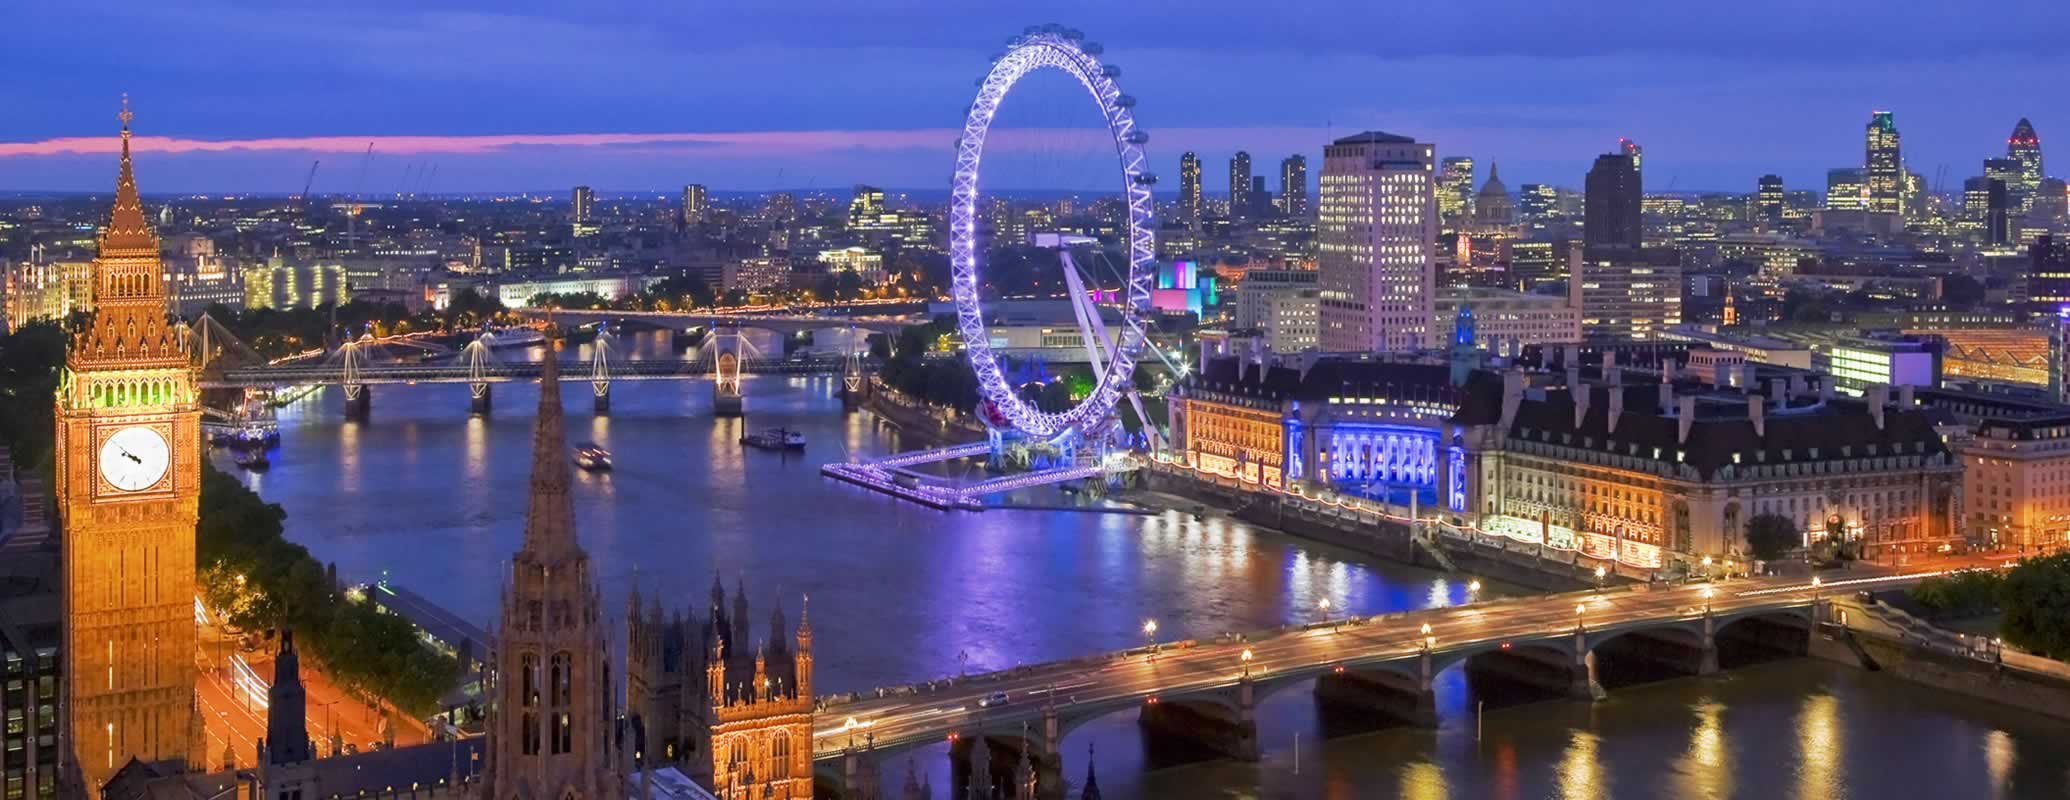 Limo hire london service areas